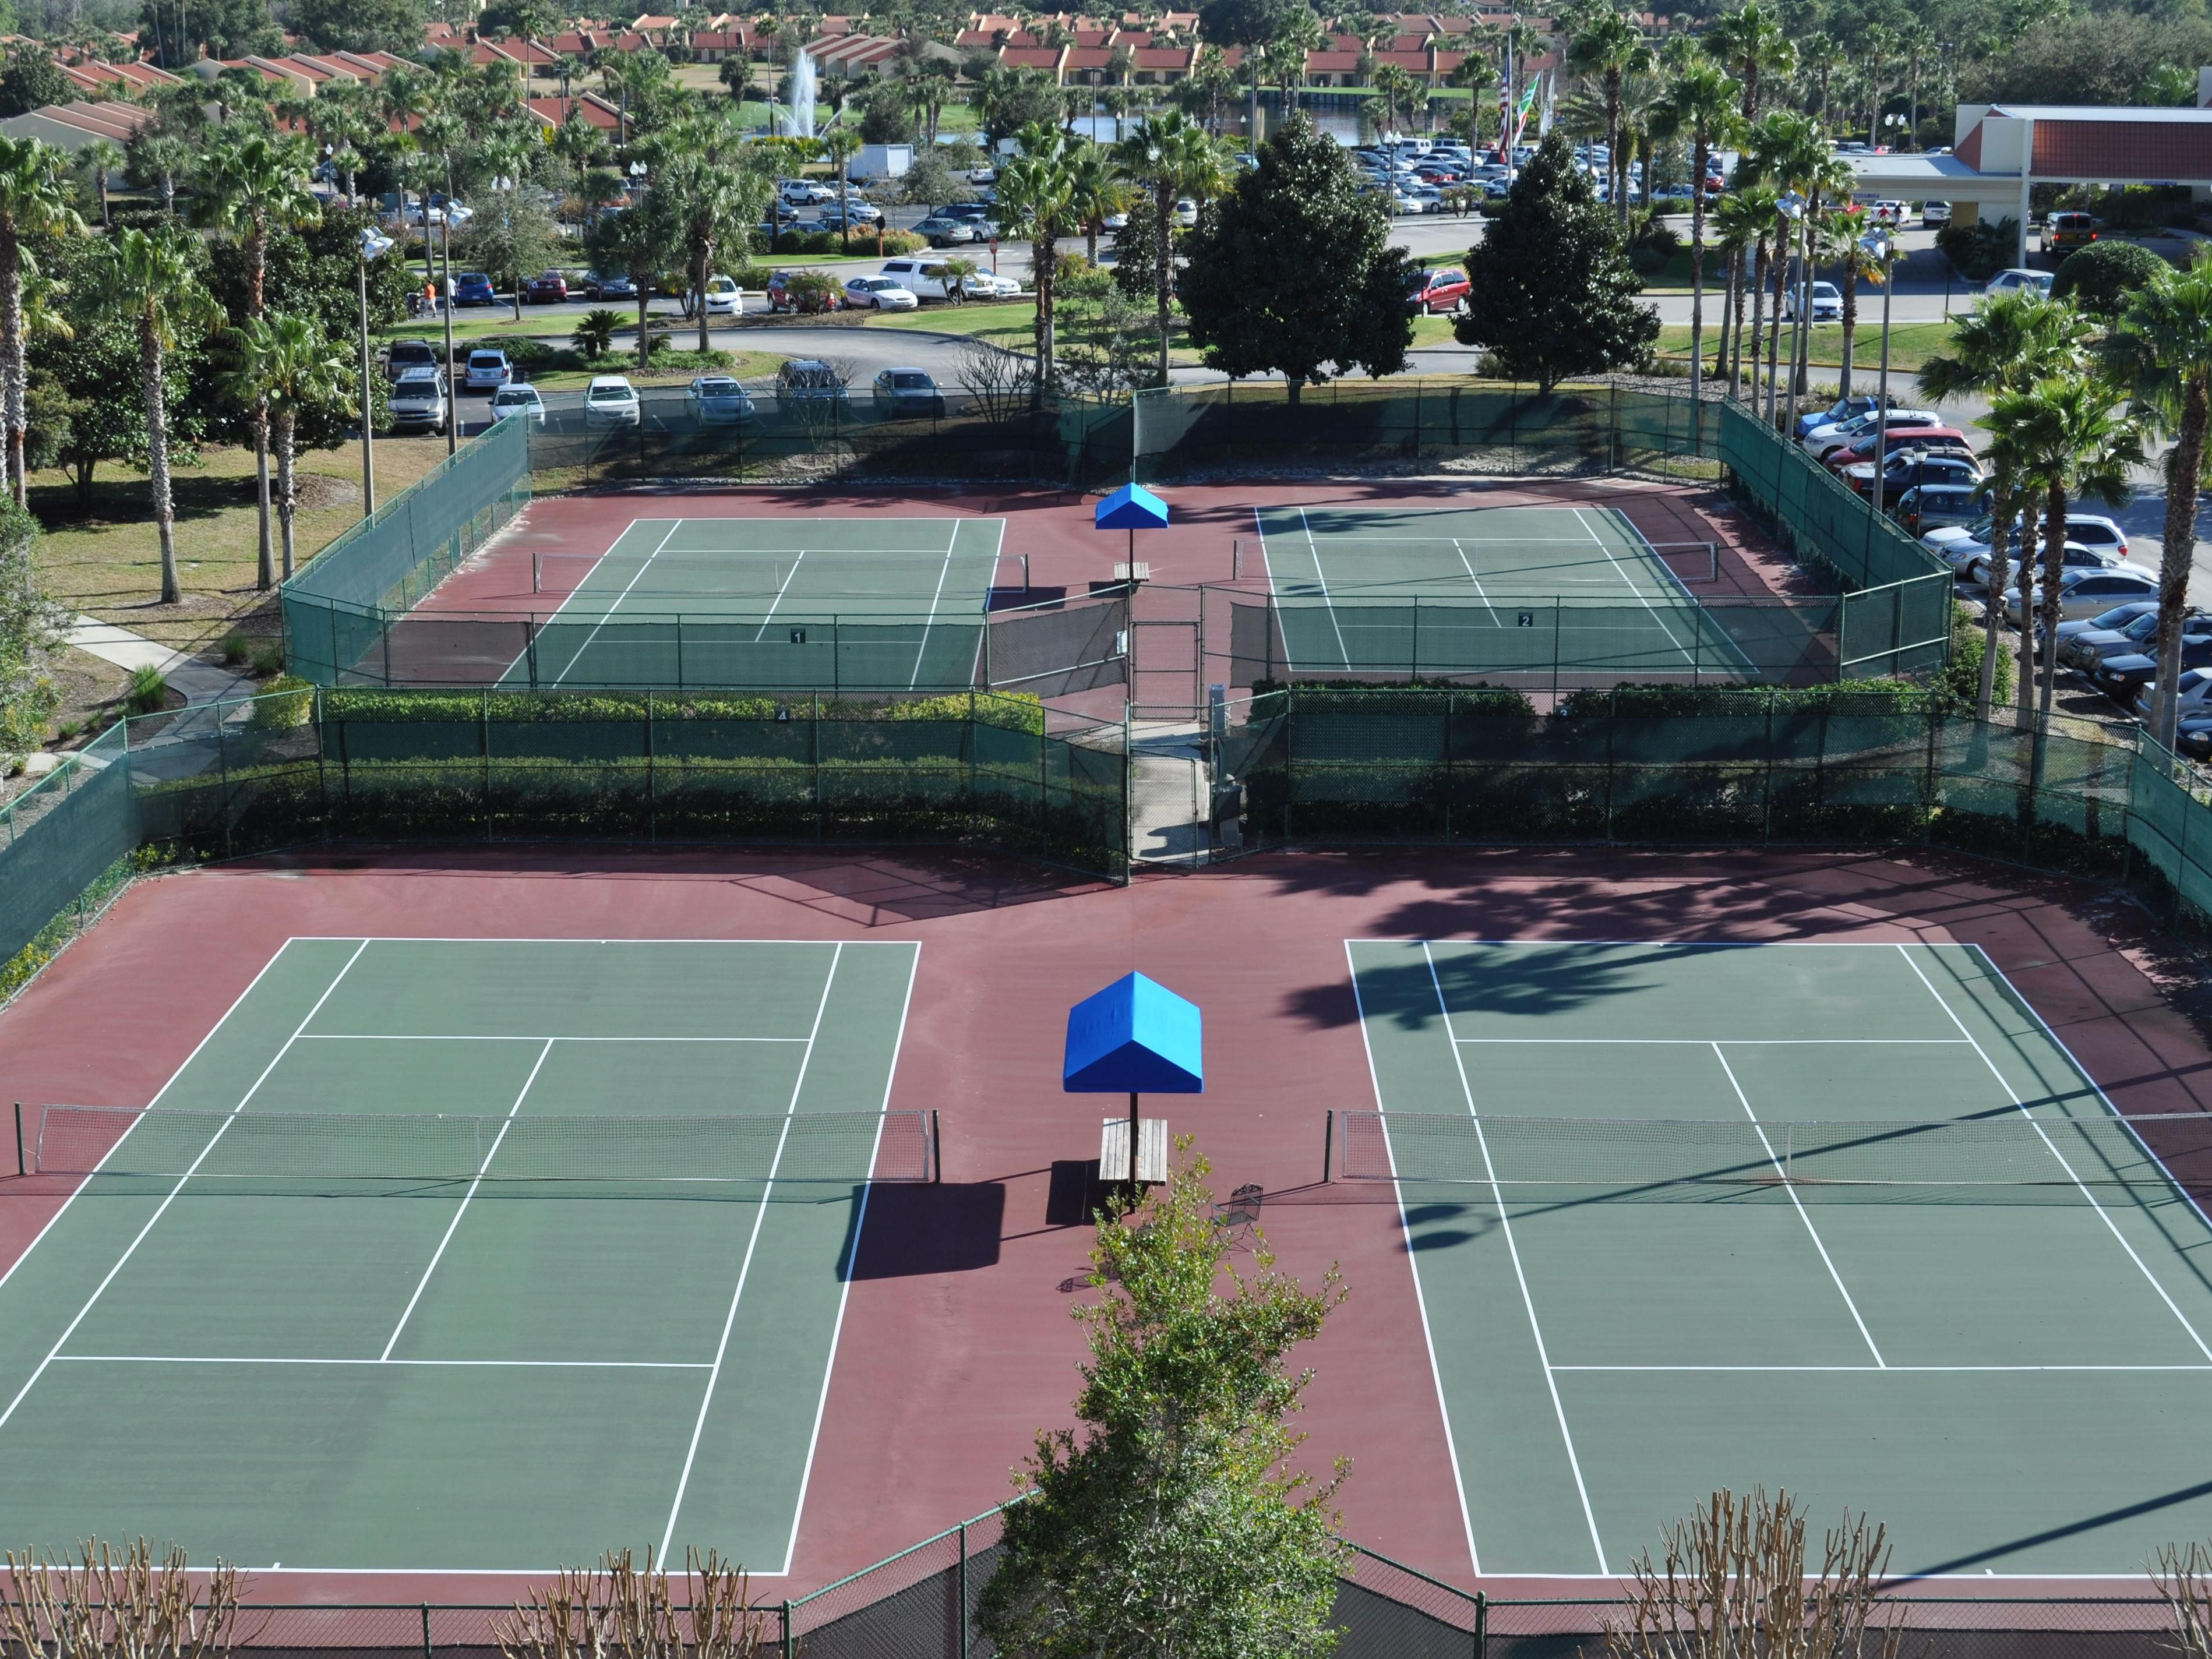 Enjoy a game of tennis with friends and family